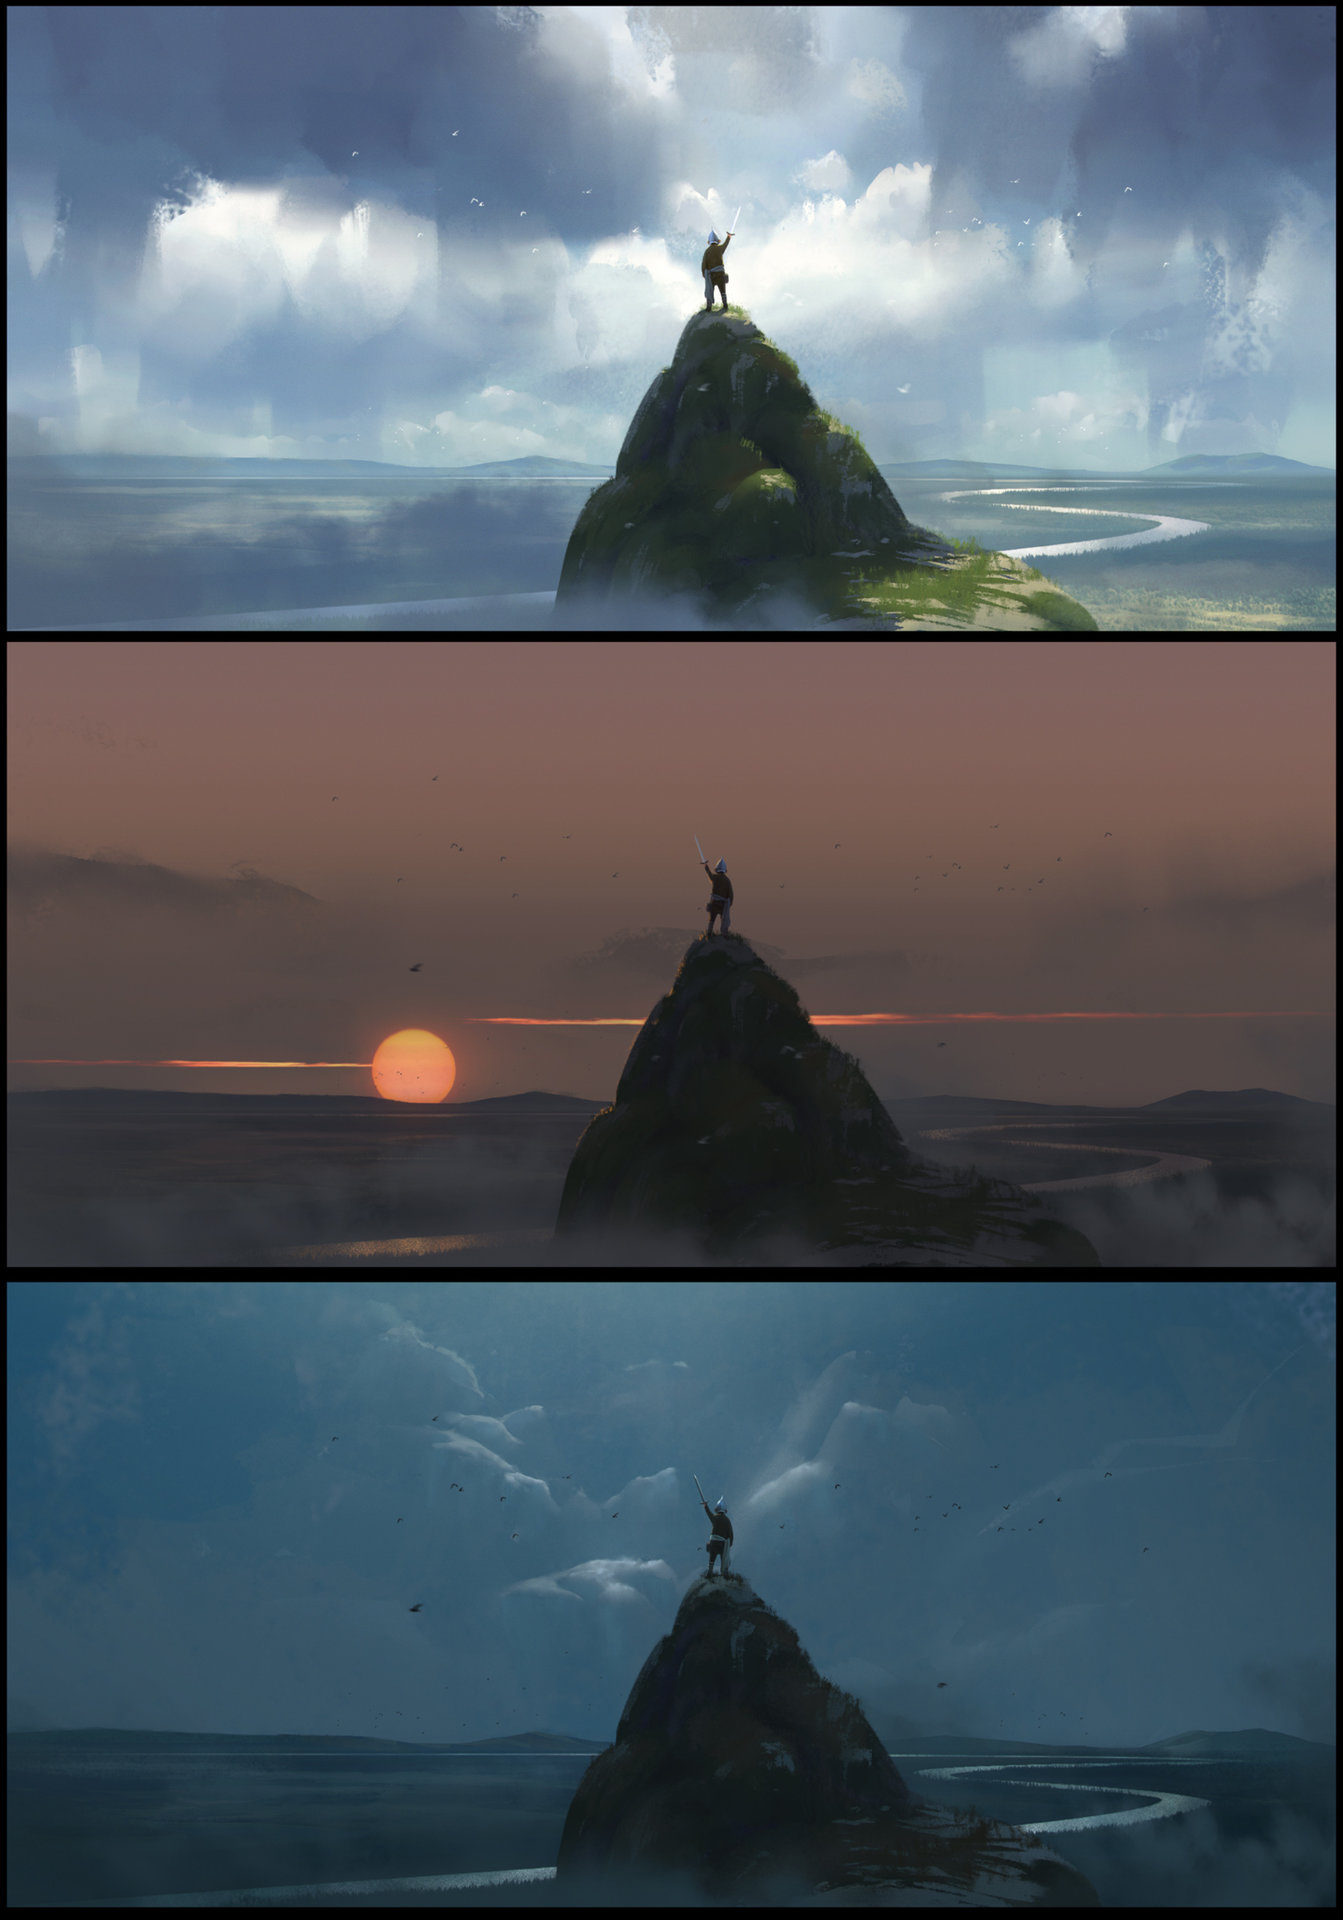 Les matte paintings de Florent Lebrun